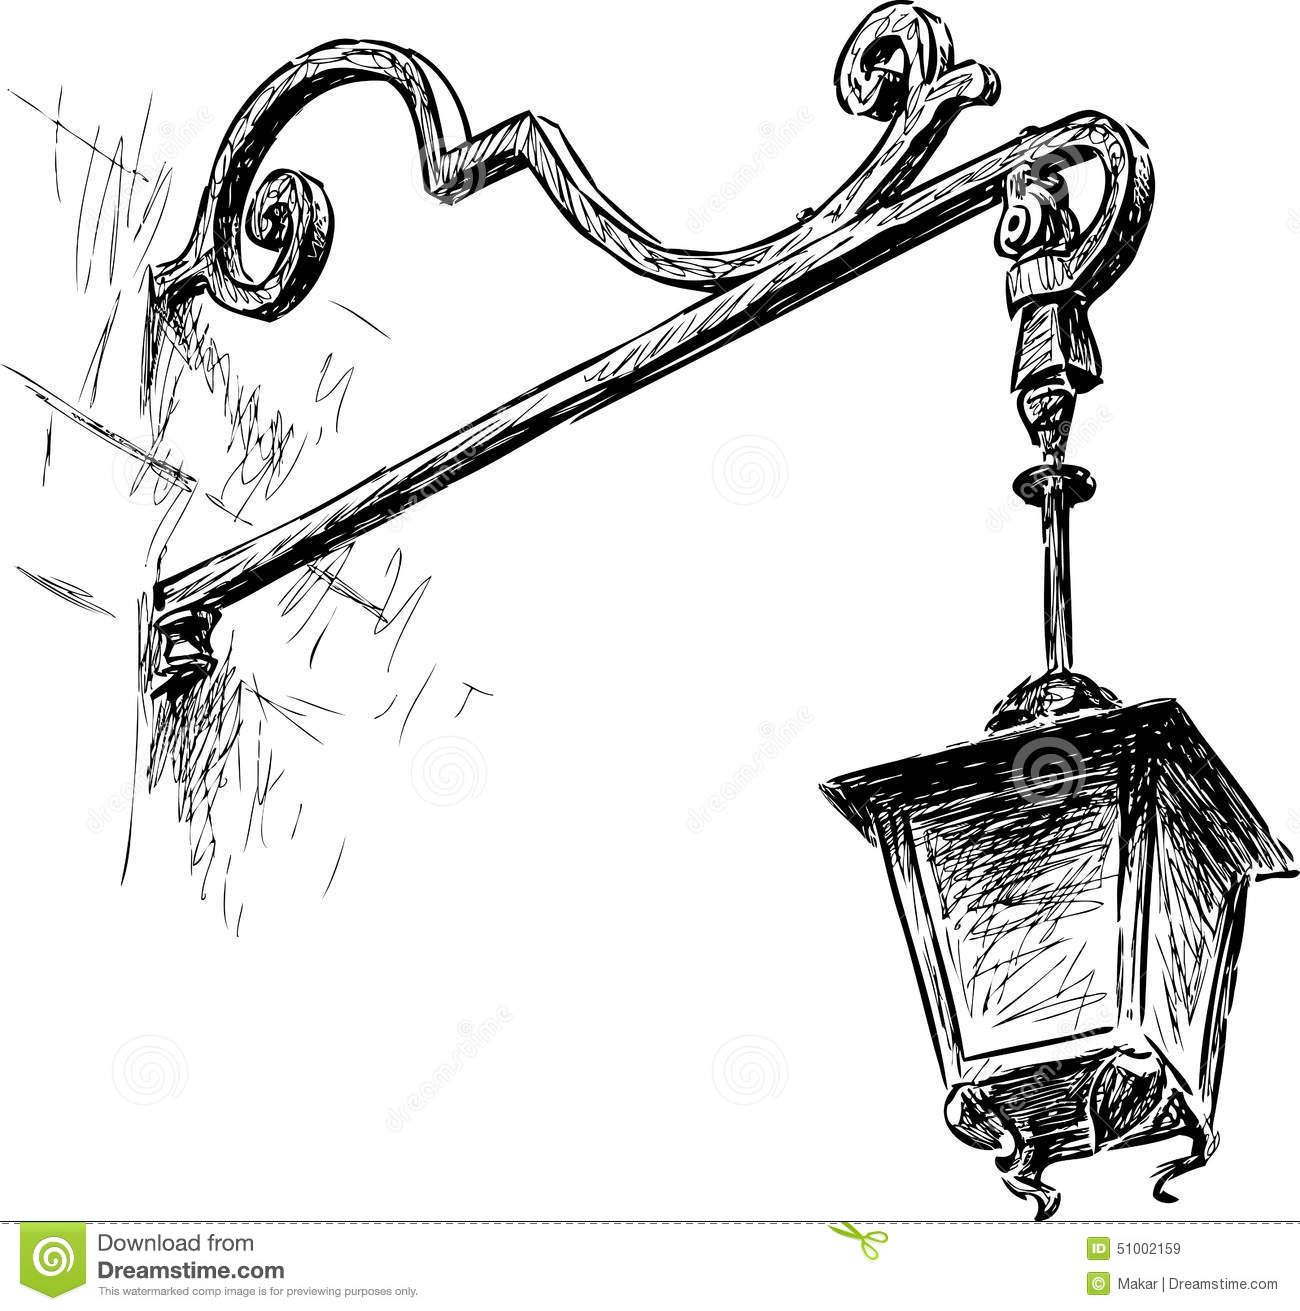 draw a street lamp - Google Search | Projects to Try | Pinterest ... for Street Light Drawing  131fsj